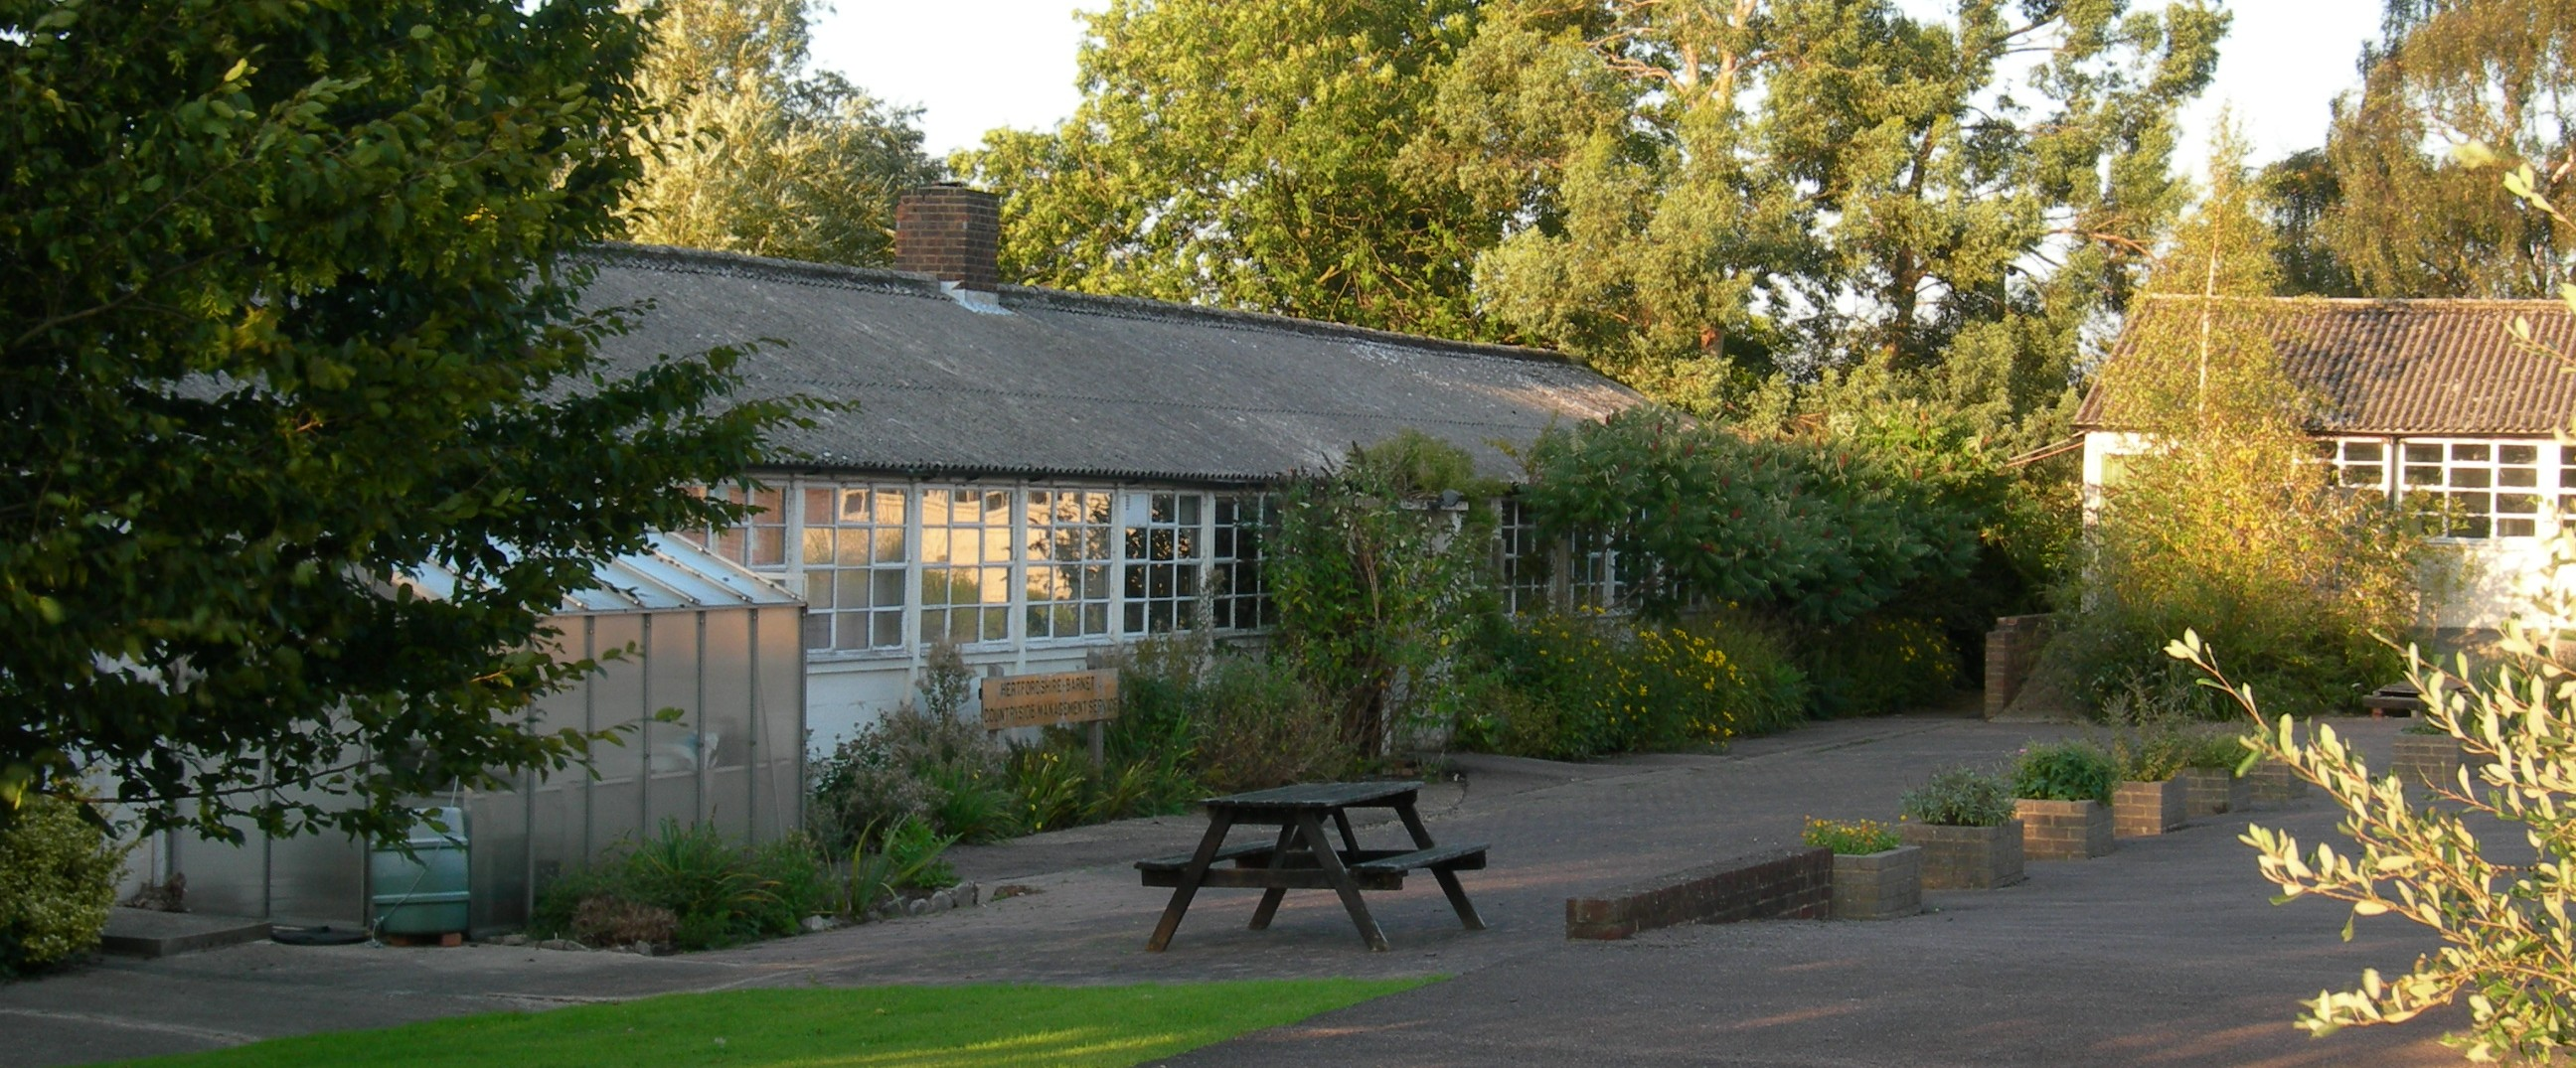 Our Classroom building due for demolition in 2015